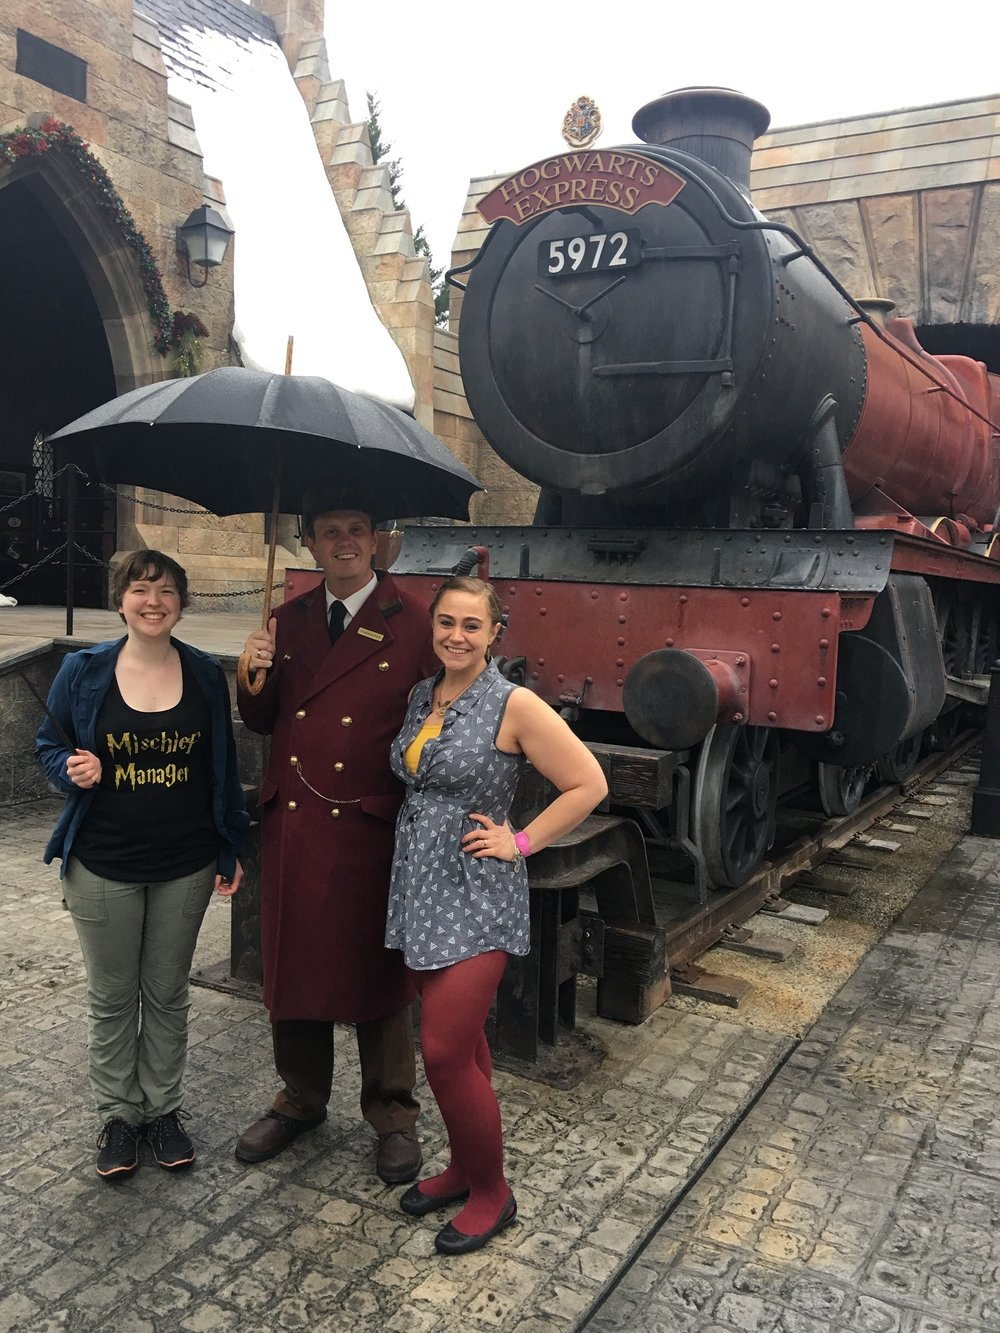 Ready to board the Hogwarts Express! Featuring a good friend and a dress I made :)